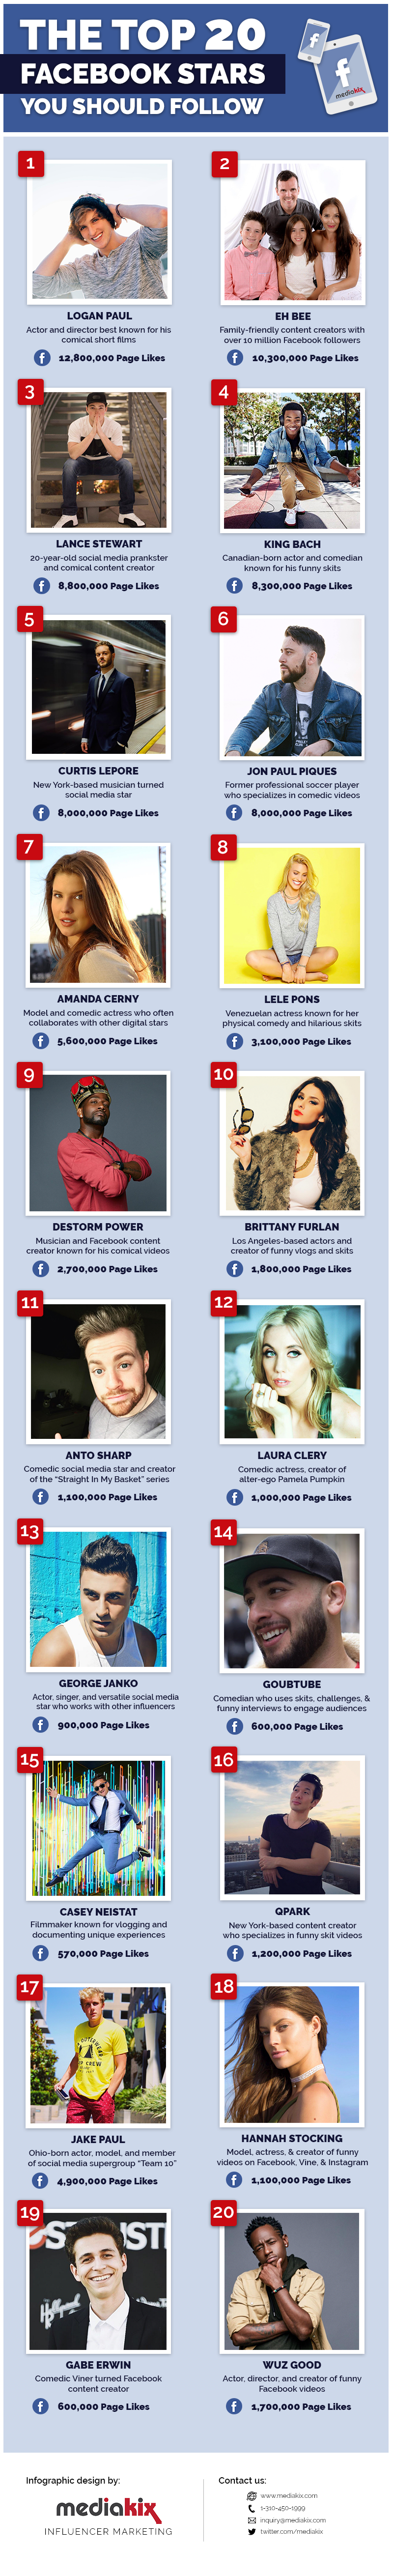 The Top 20 Facebook Stars You Should Follow